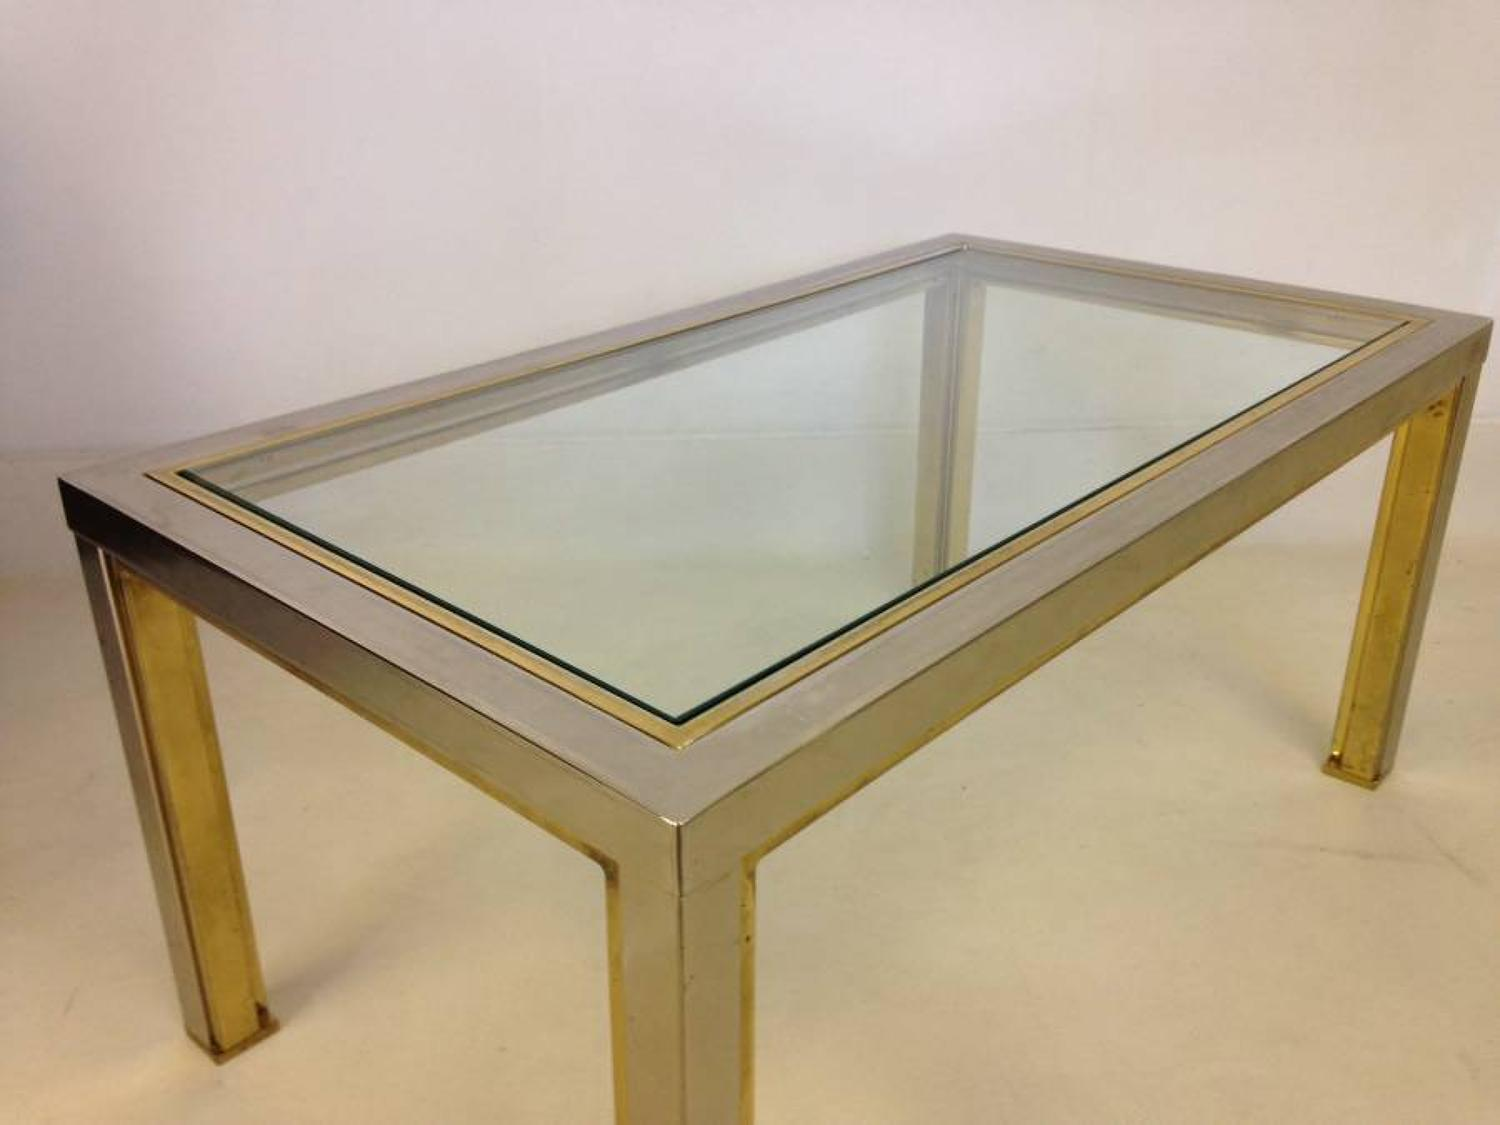 Chrome and lacquered brass side table